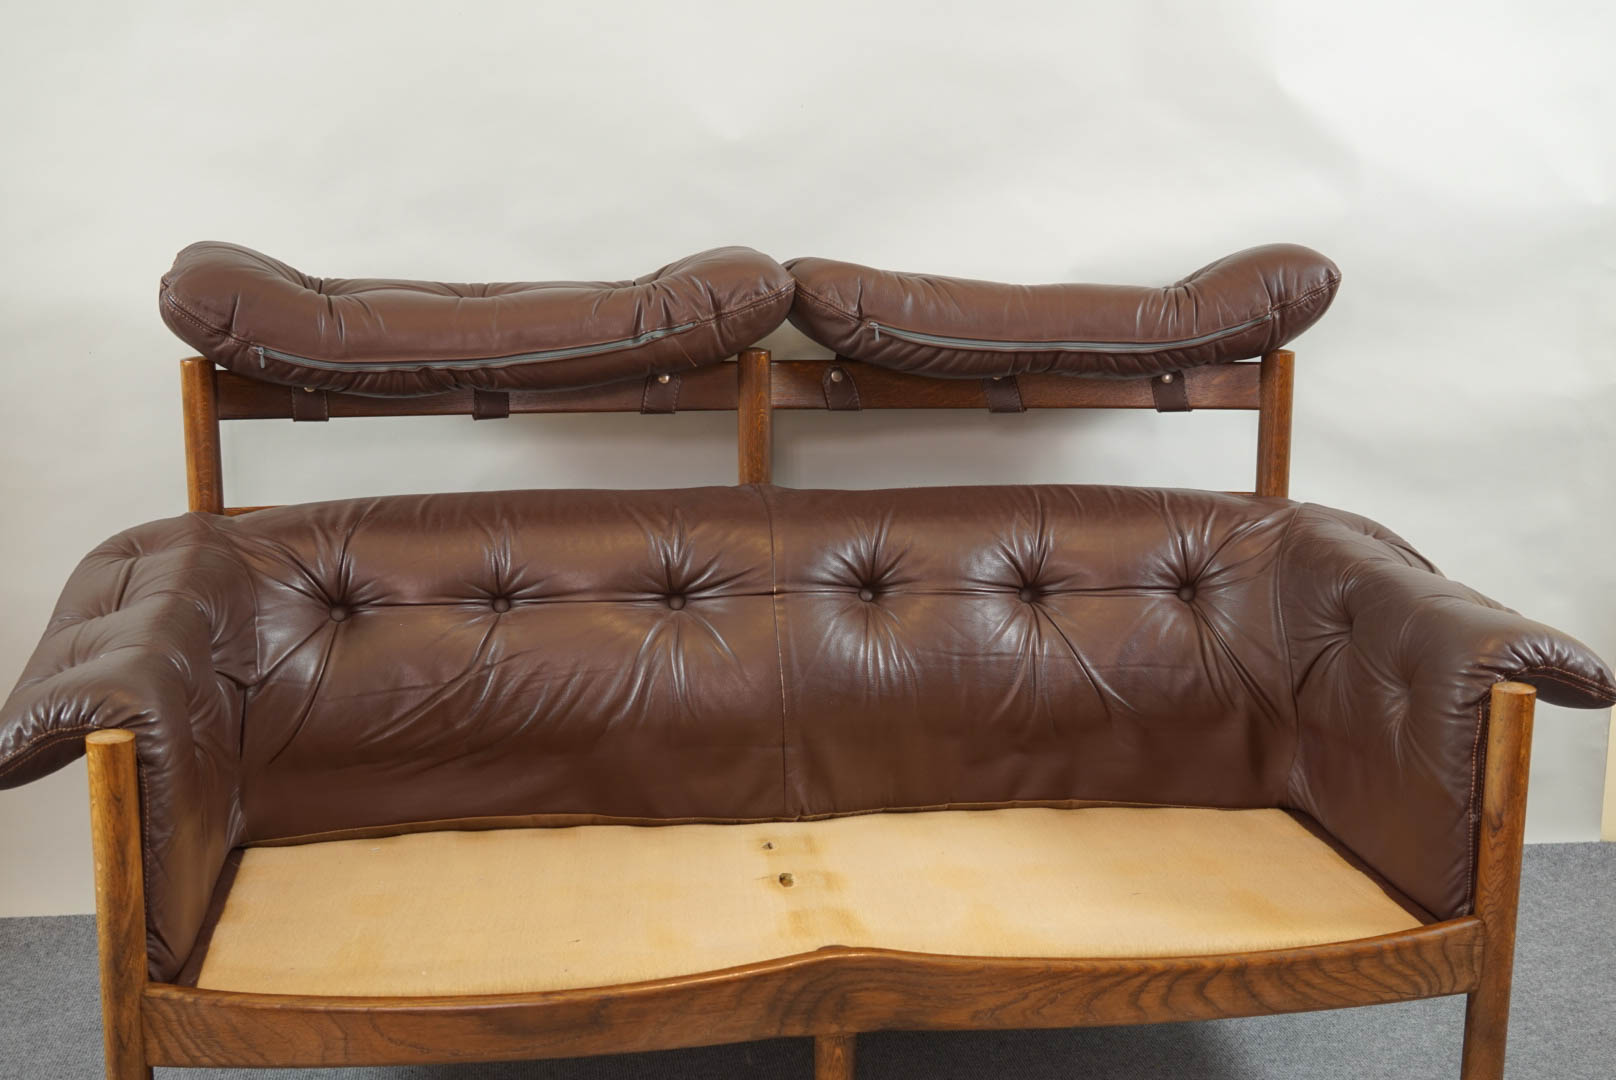 Vintage Tufted Leather Sofa By Arne Norell Galerie Libelle